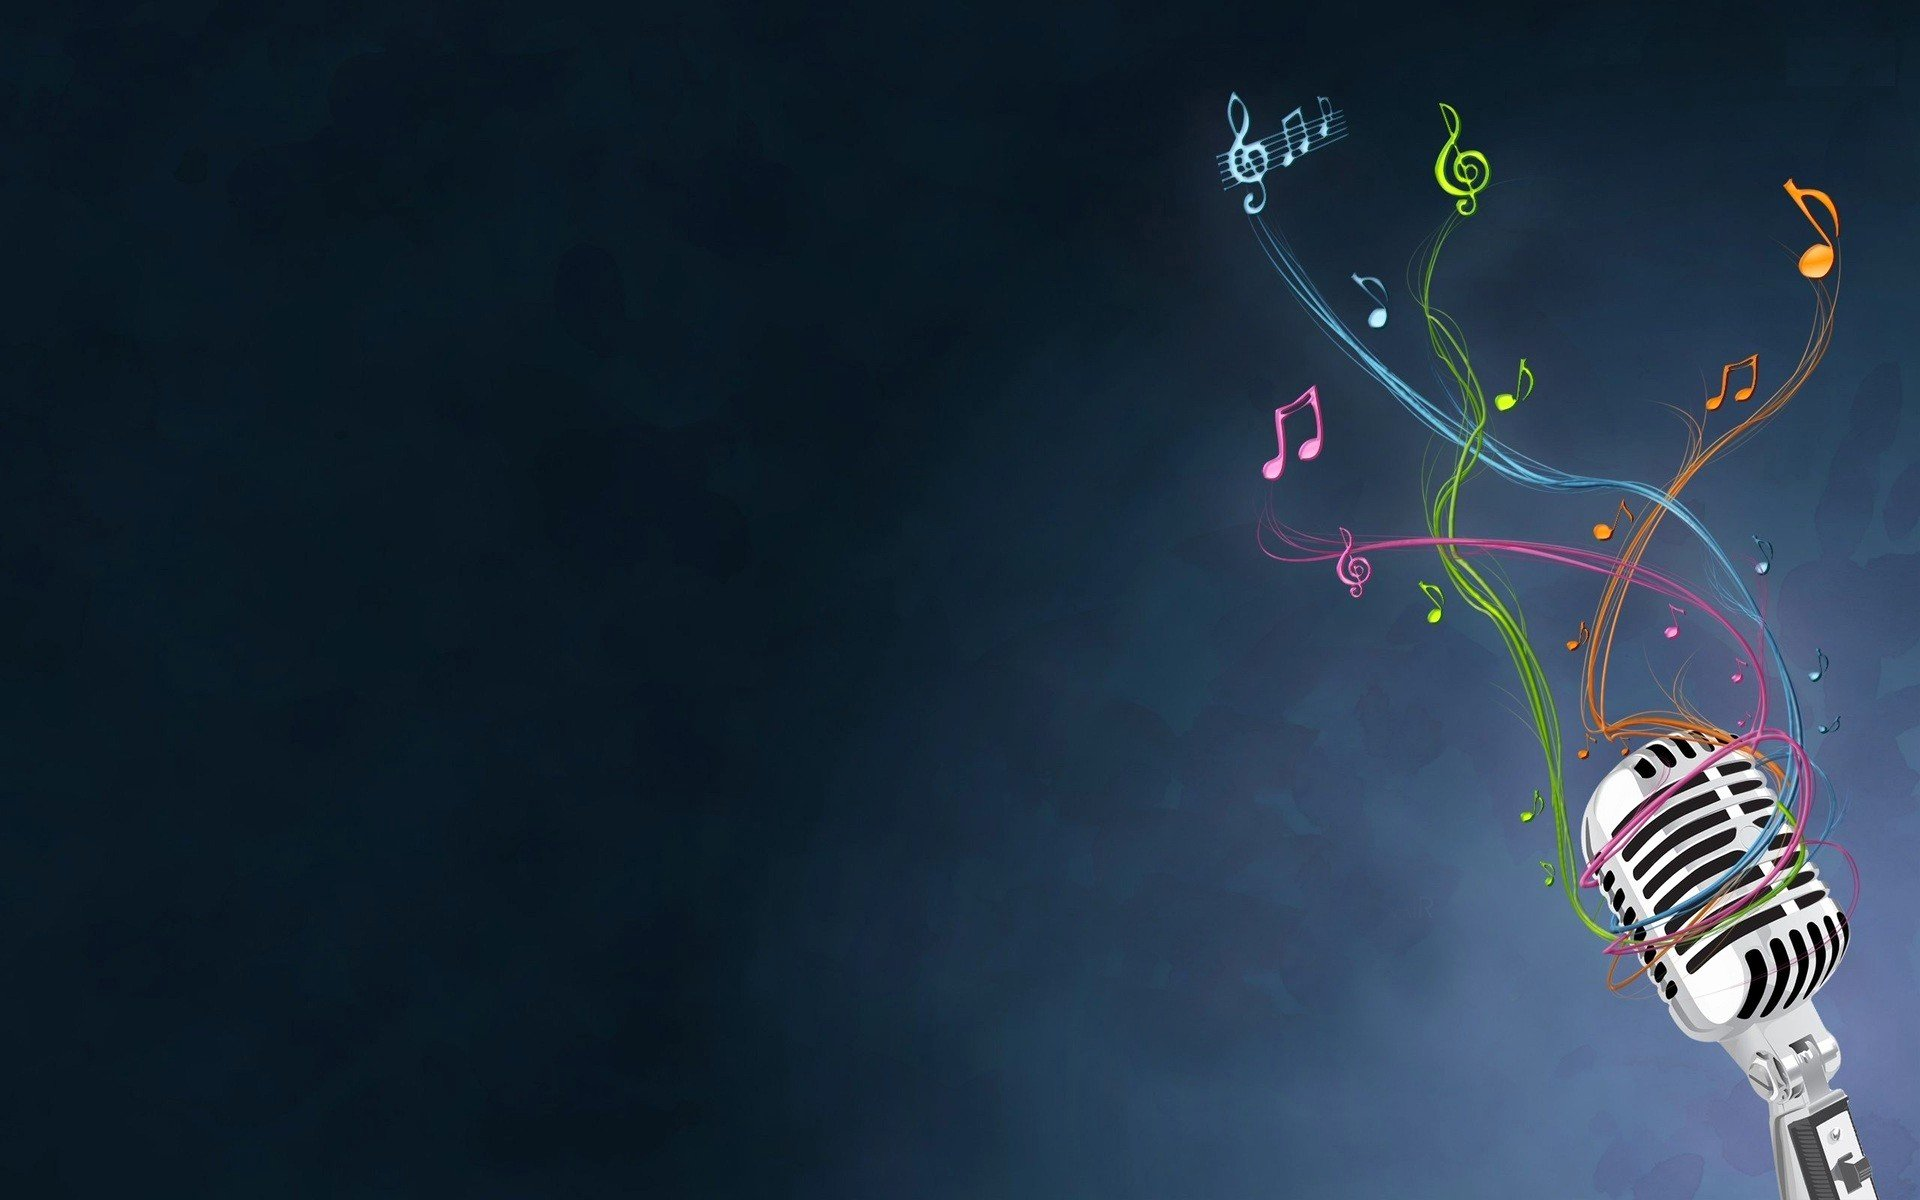 Free Music Background Images New Amazing for Backgrounds